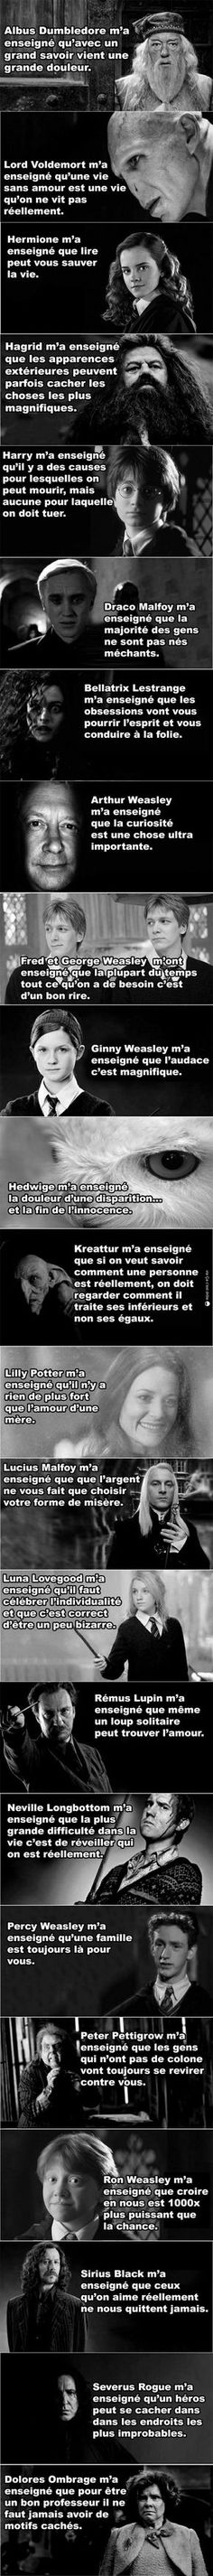 Memes Harry Potter Hermione Funny Ideas For 2019 Harry Potter Hermione, Harry Potter Film, Harry Potter Texts, Harry Potter Quotes, Harley Quinn, Funny Quotes, Funny Memes, Moral, Life Humor